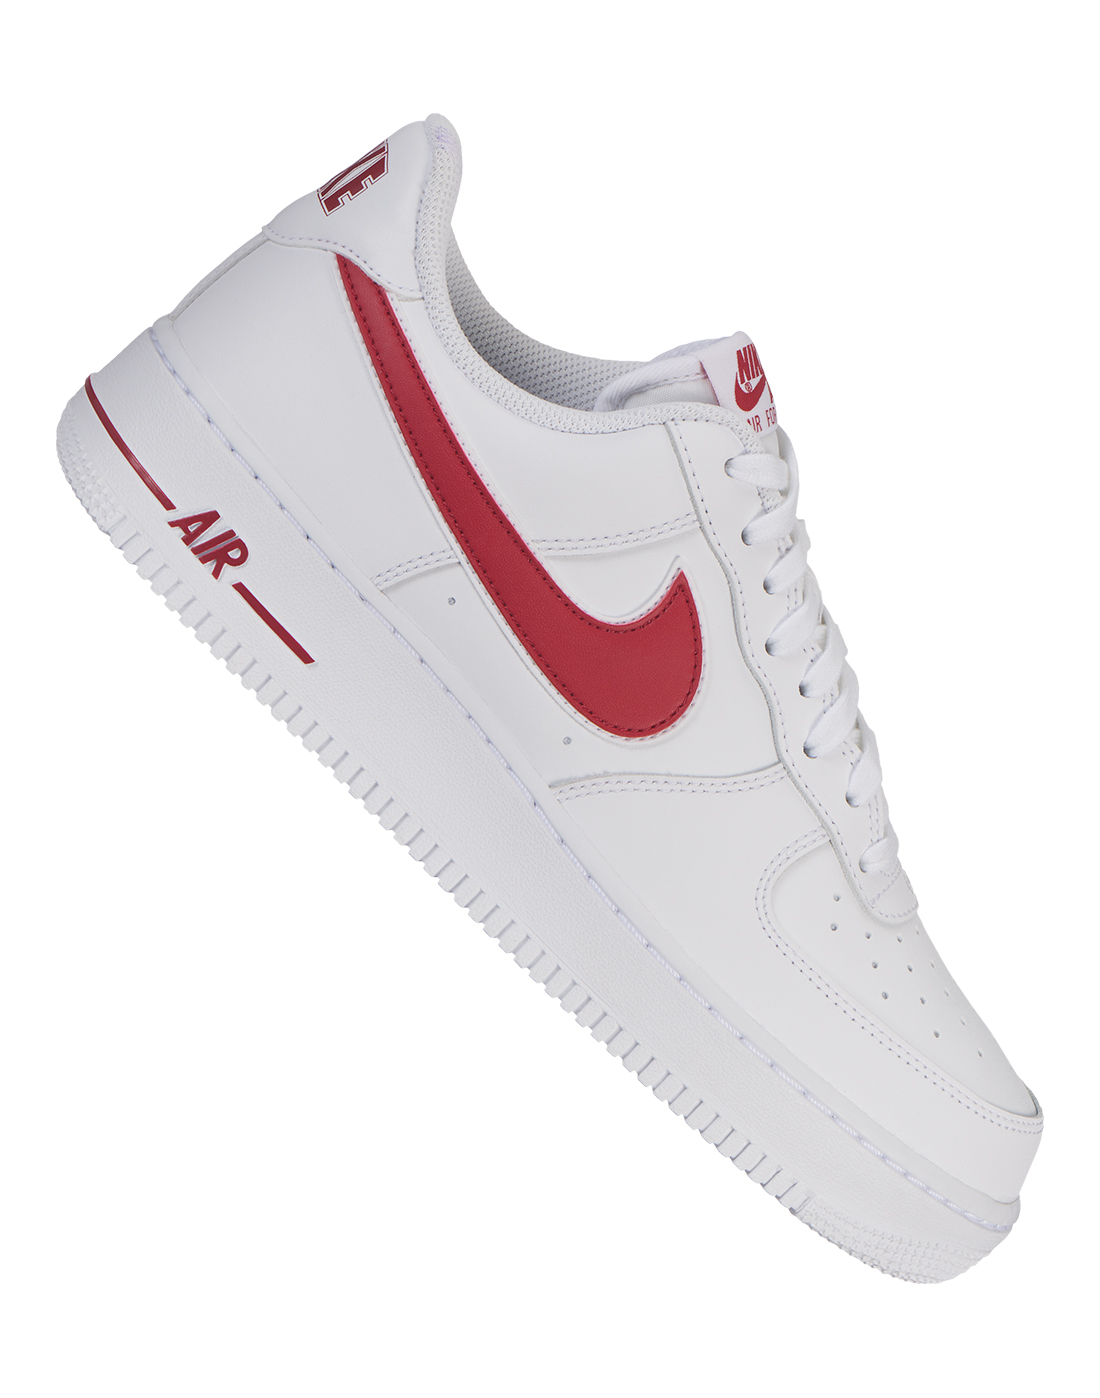 698988a24a9a8 Men's White & Red Nike Air Force 1 | Life Style Sports